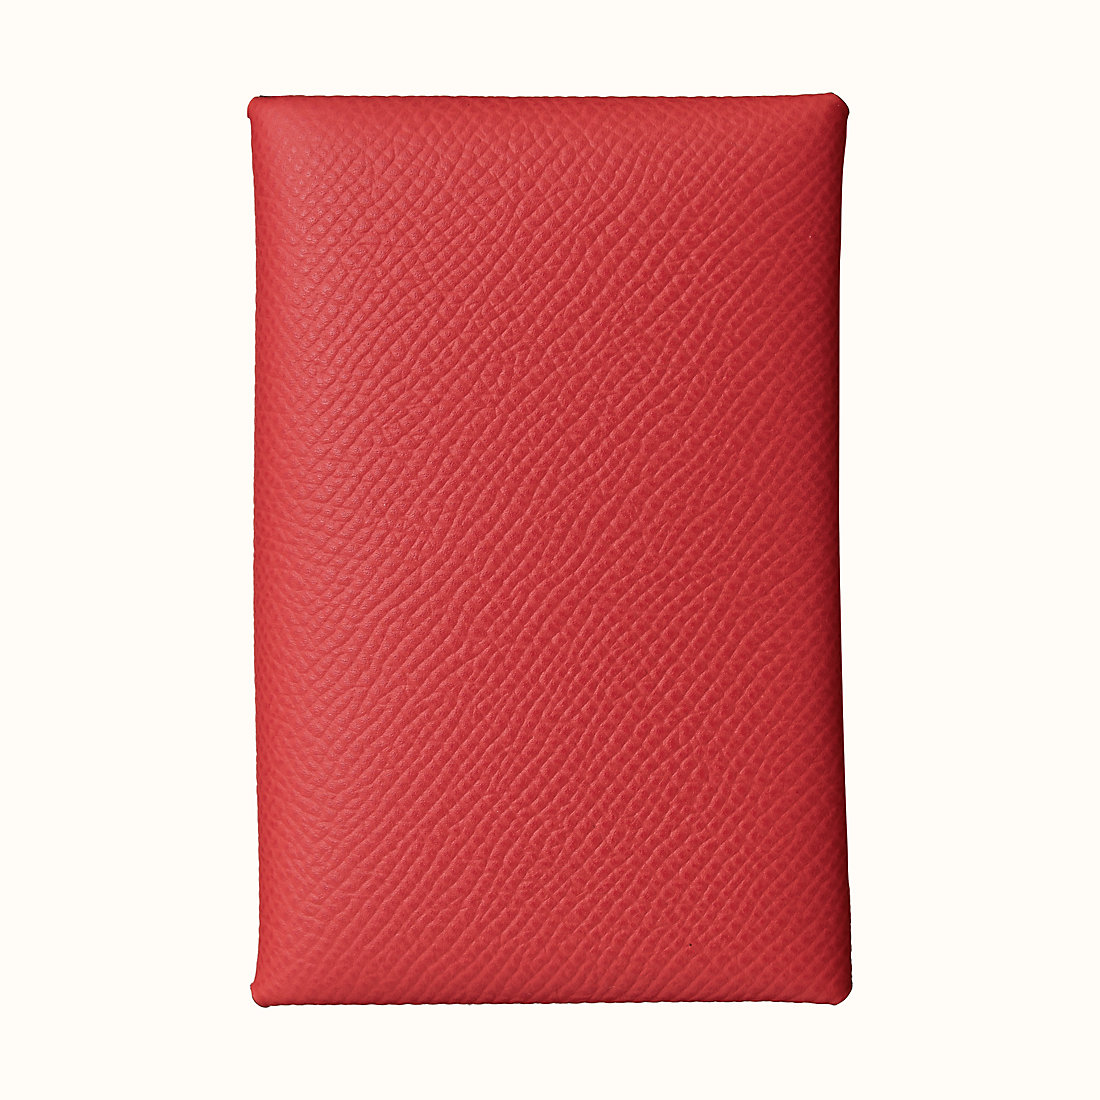 澳門大堂區 愛馬仕 Hermes Calvi verso card holder Epsom CKA5 杜鹃红